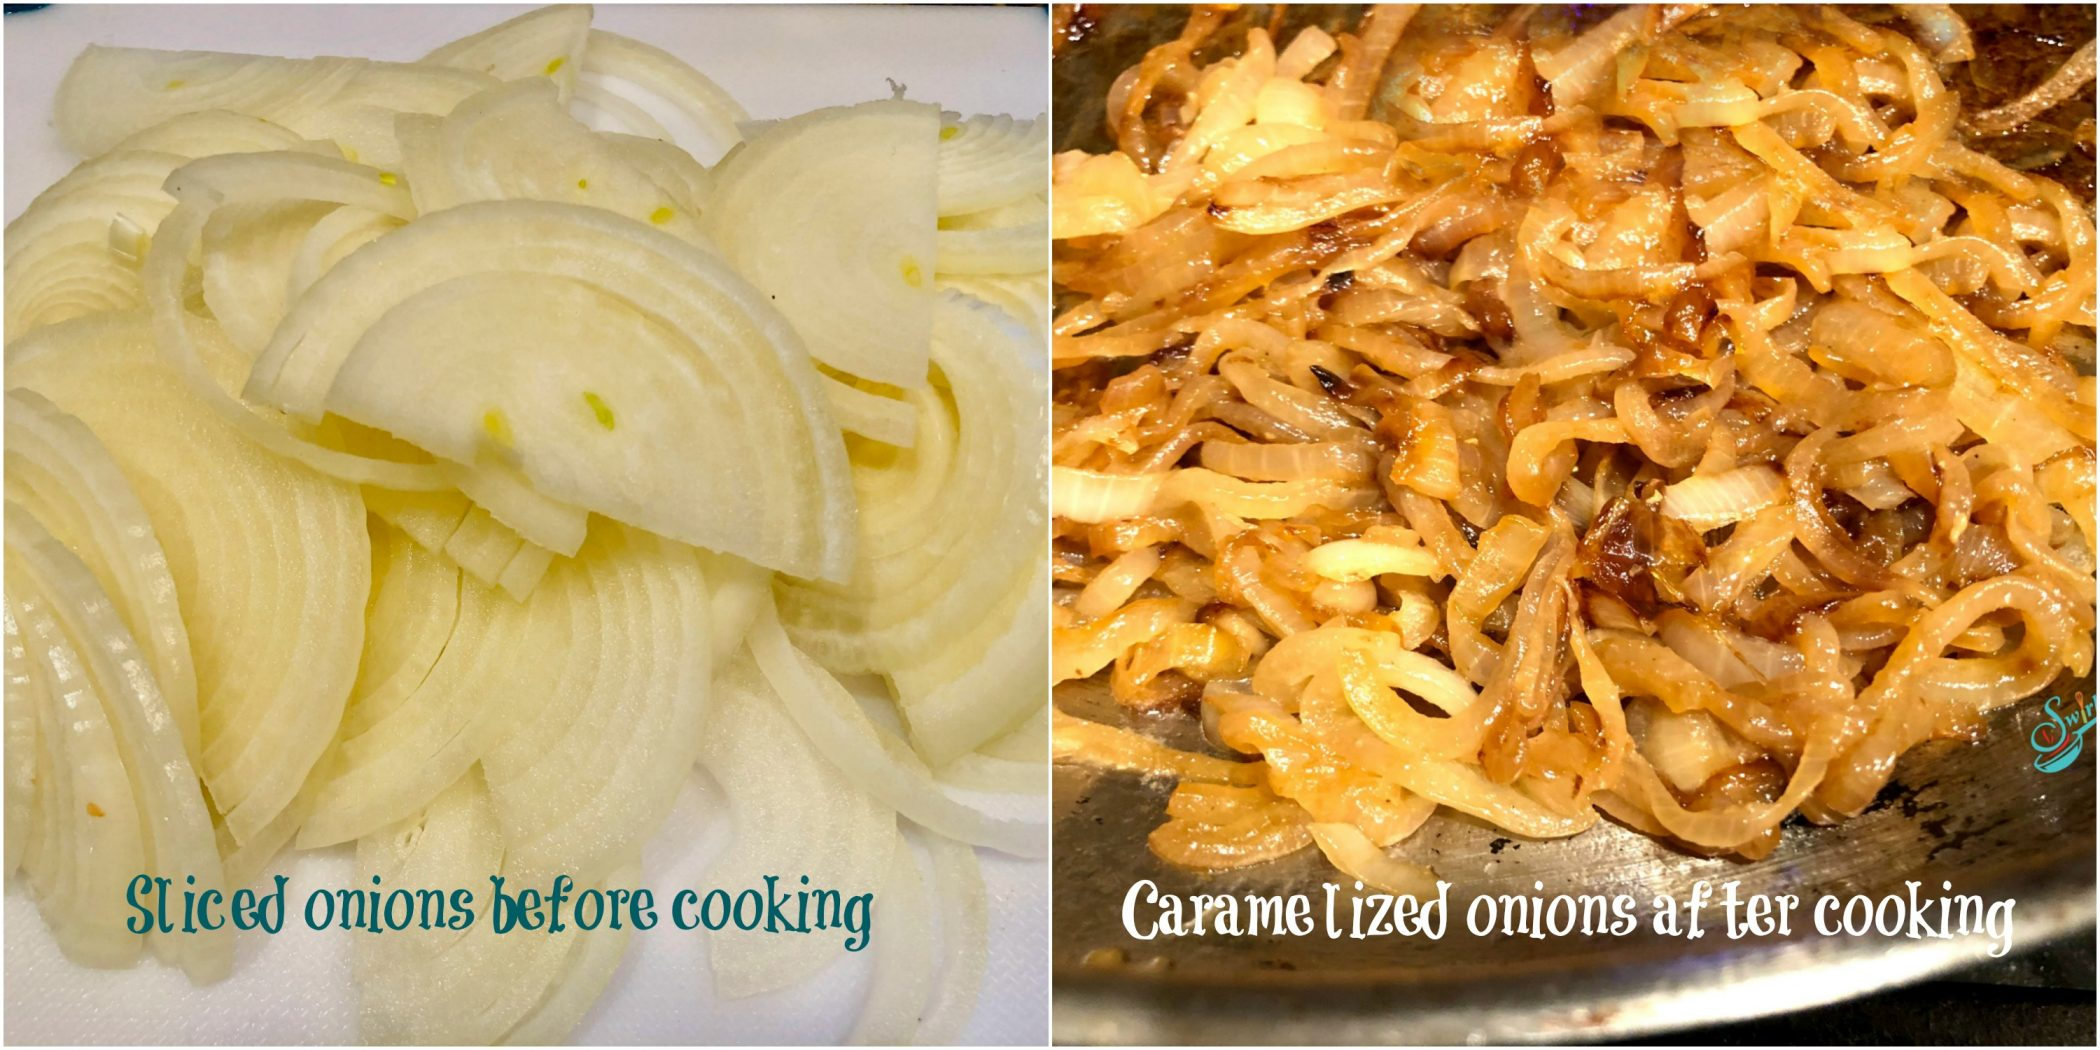 Onions before and after caramelizing